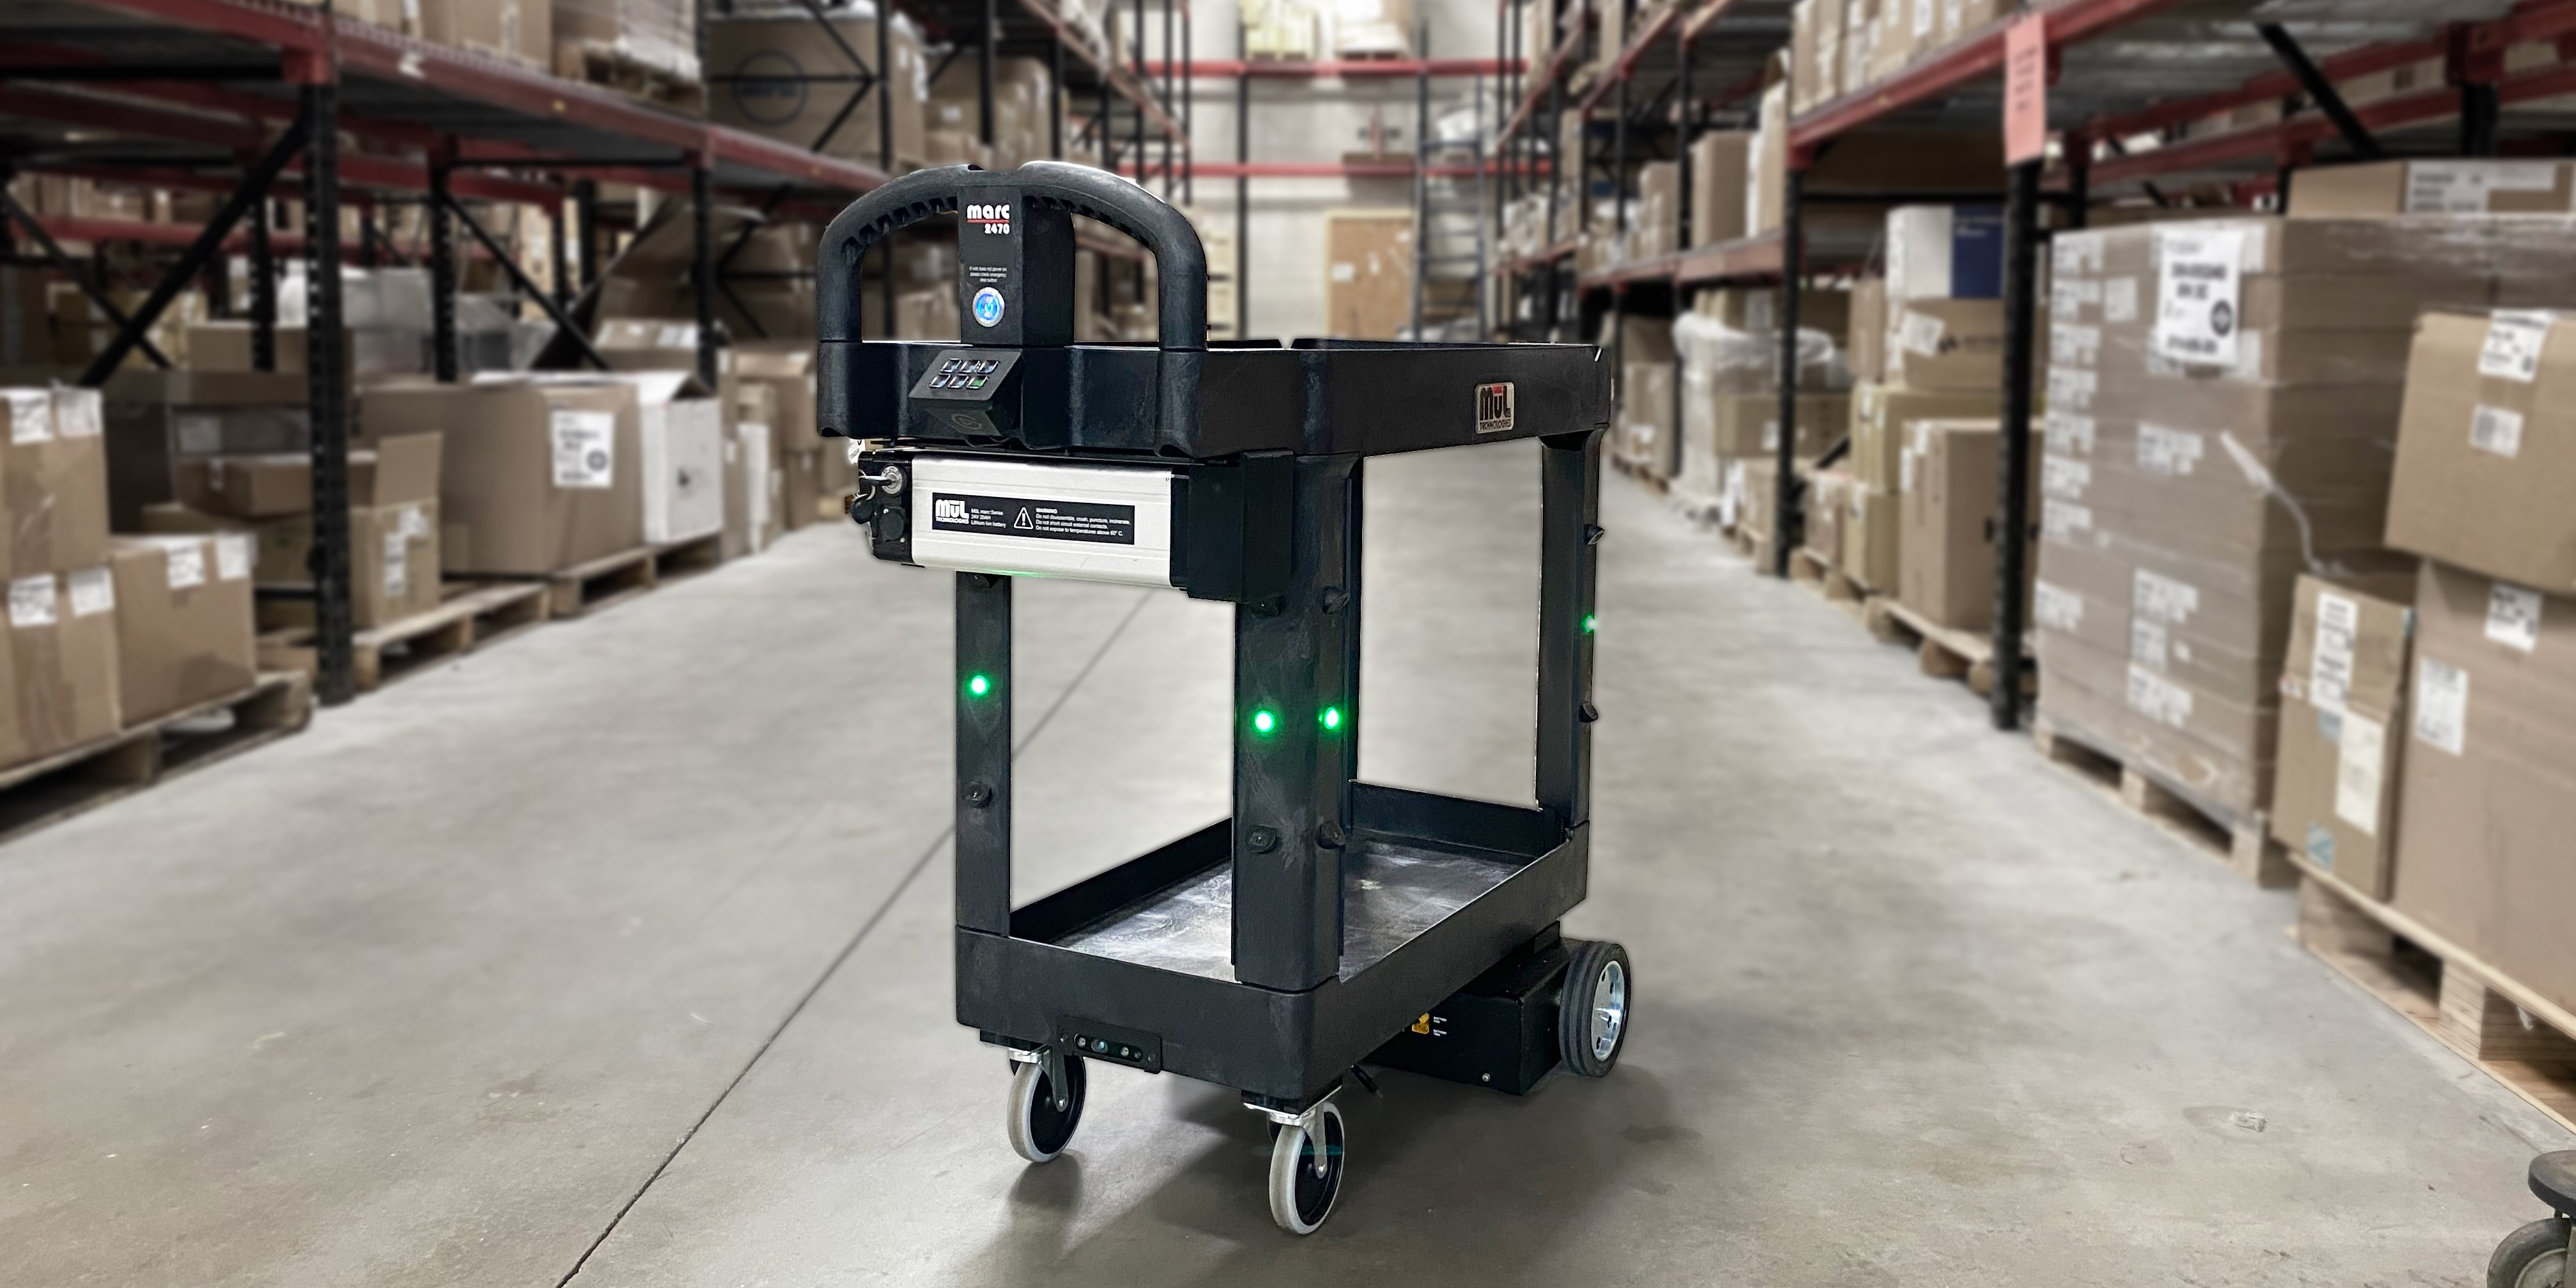 MuL robotic cart in a warehouse